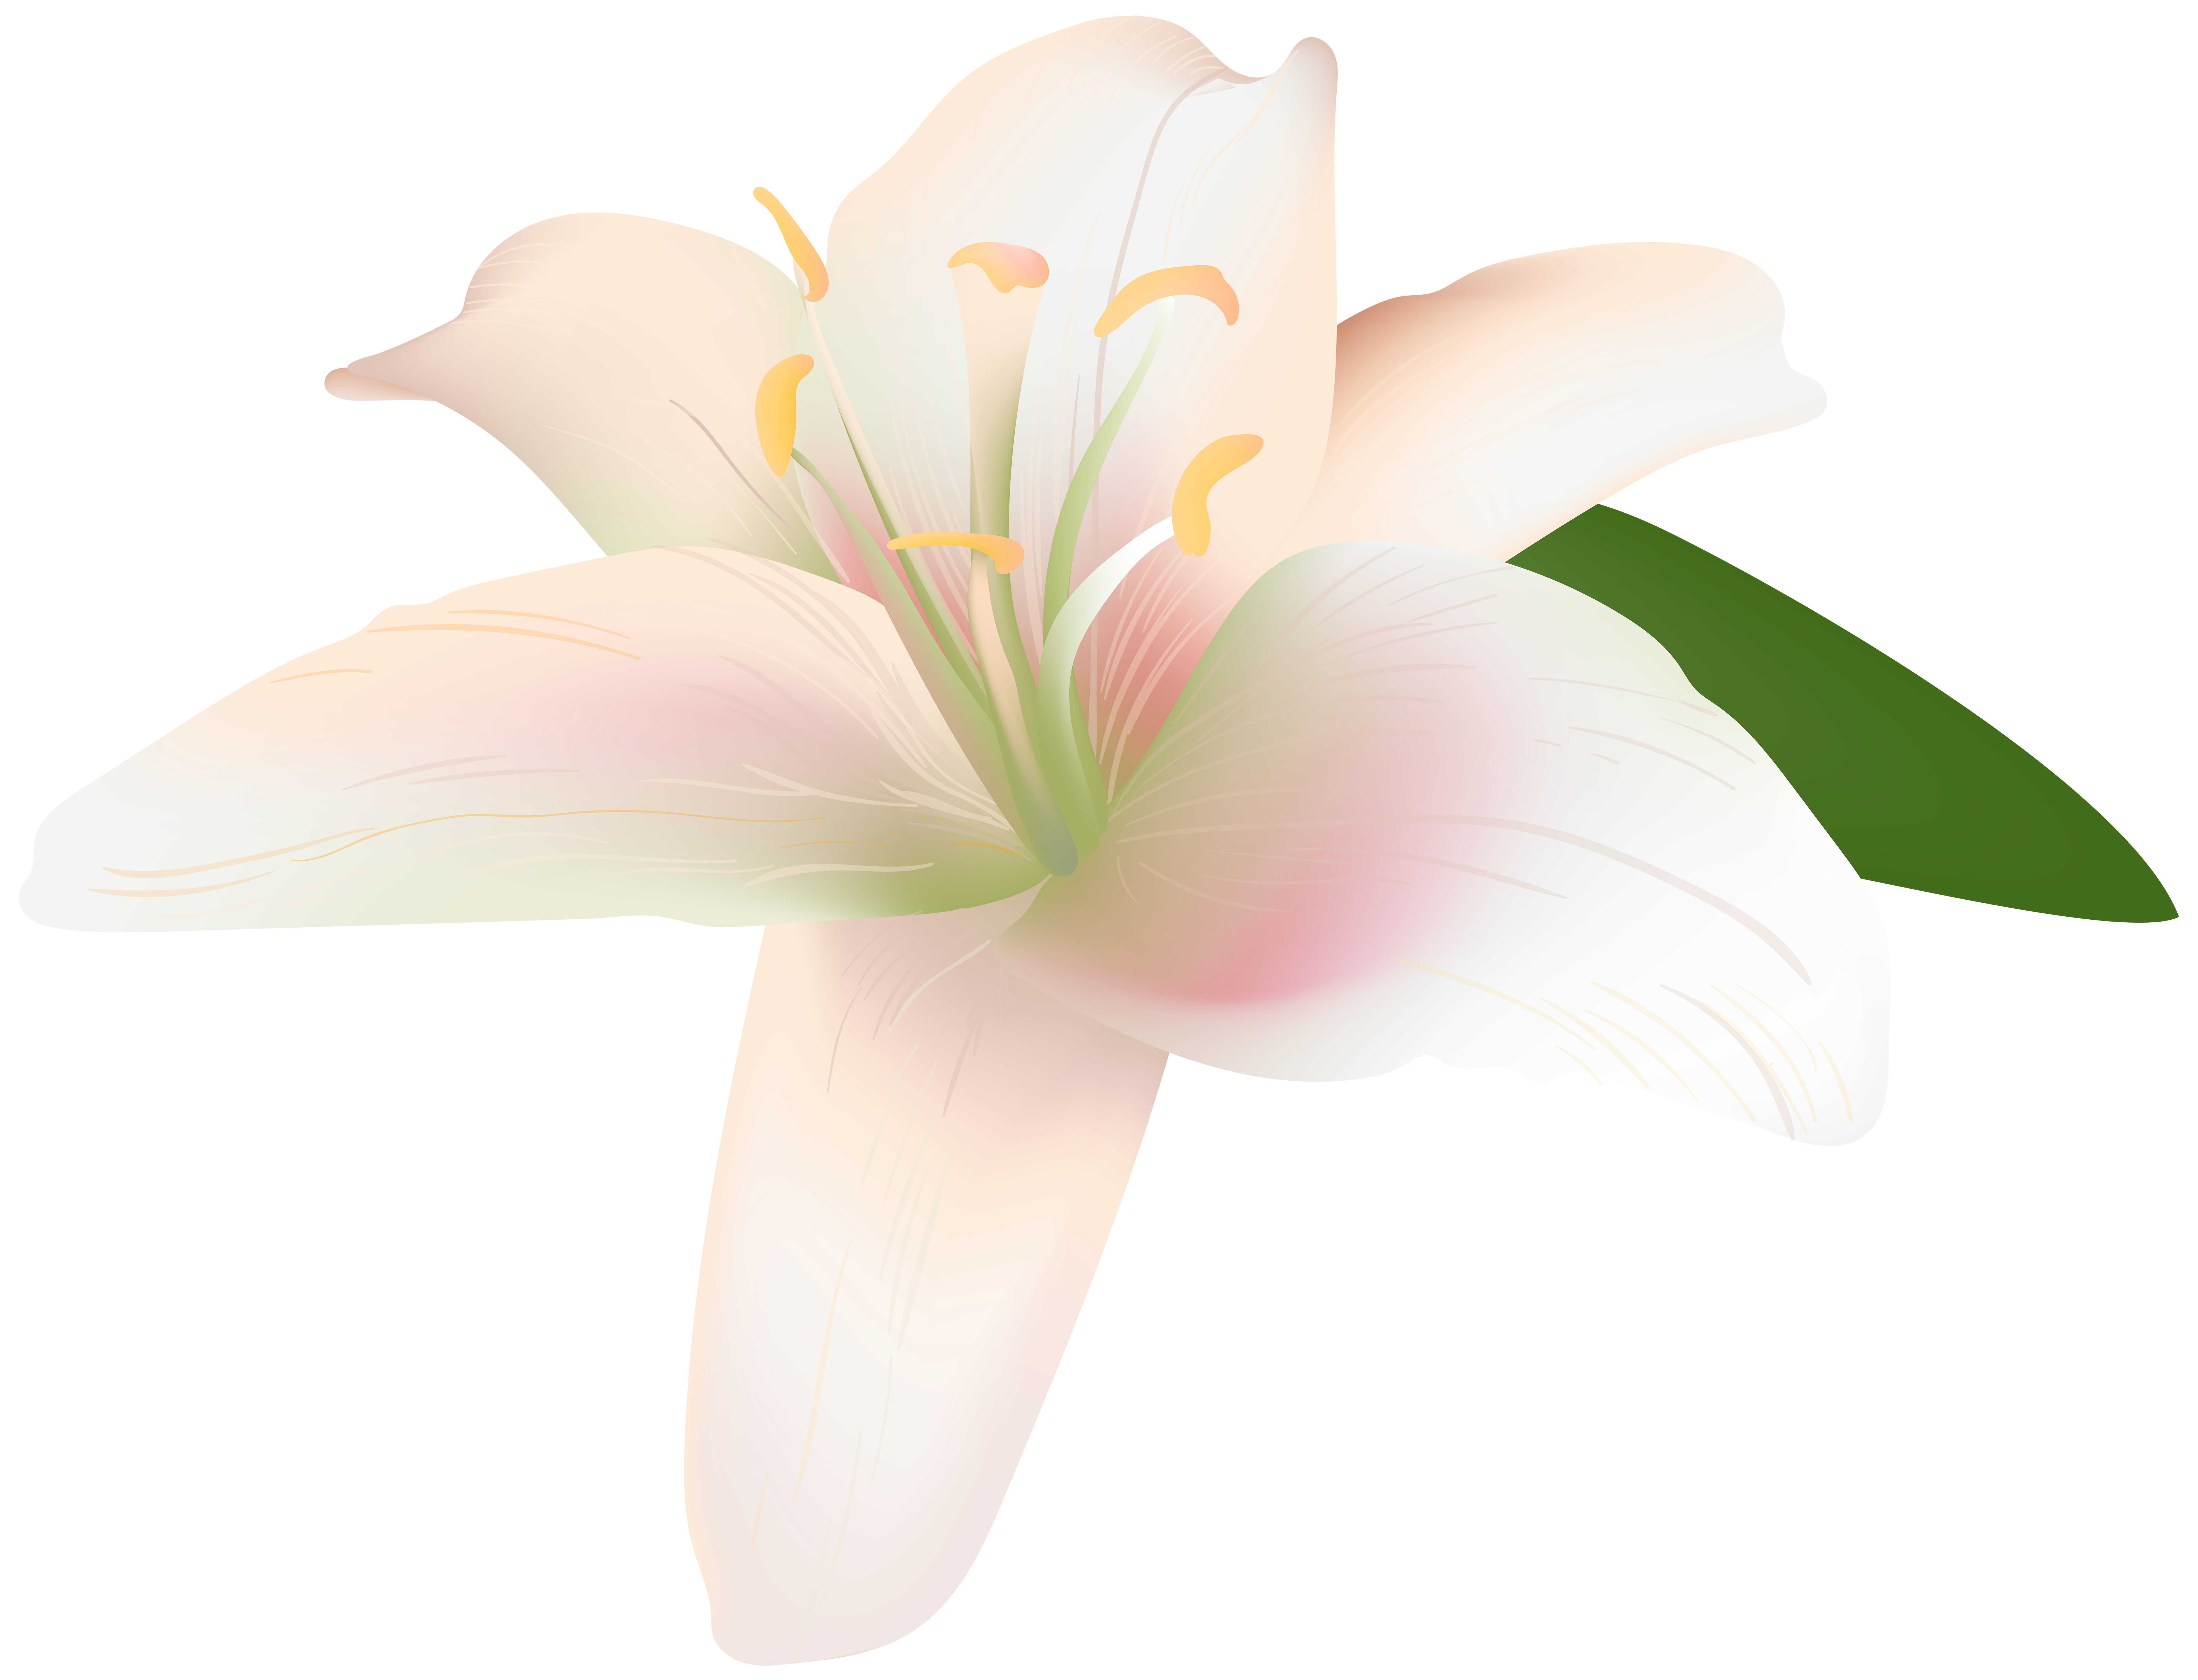 lily clipart summer flower